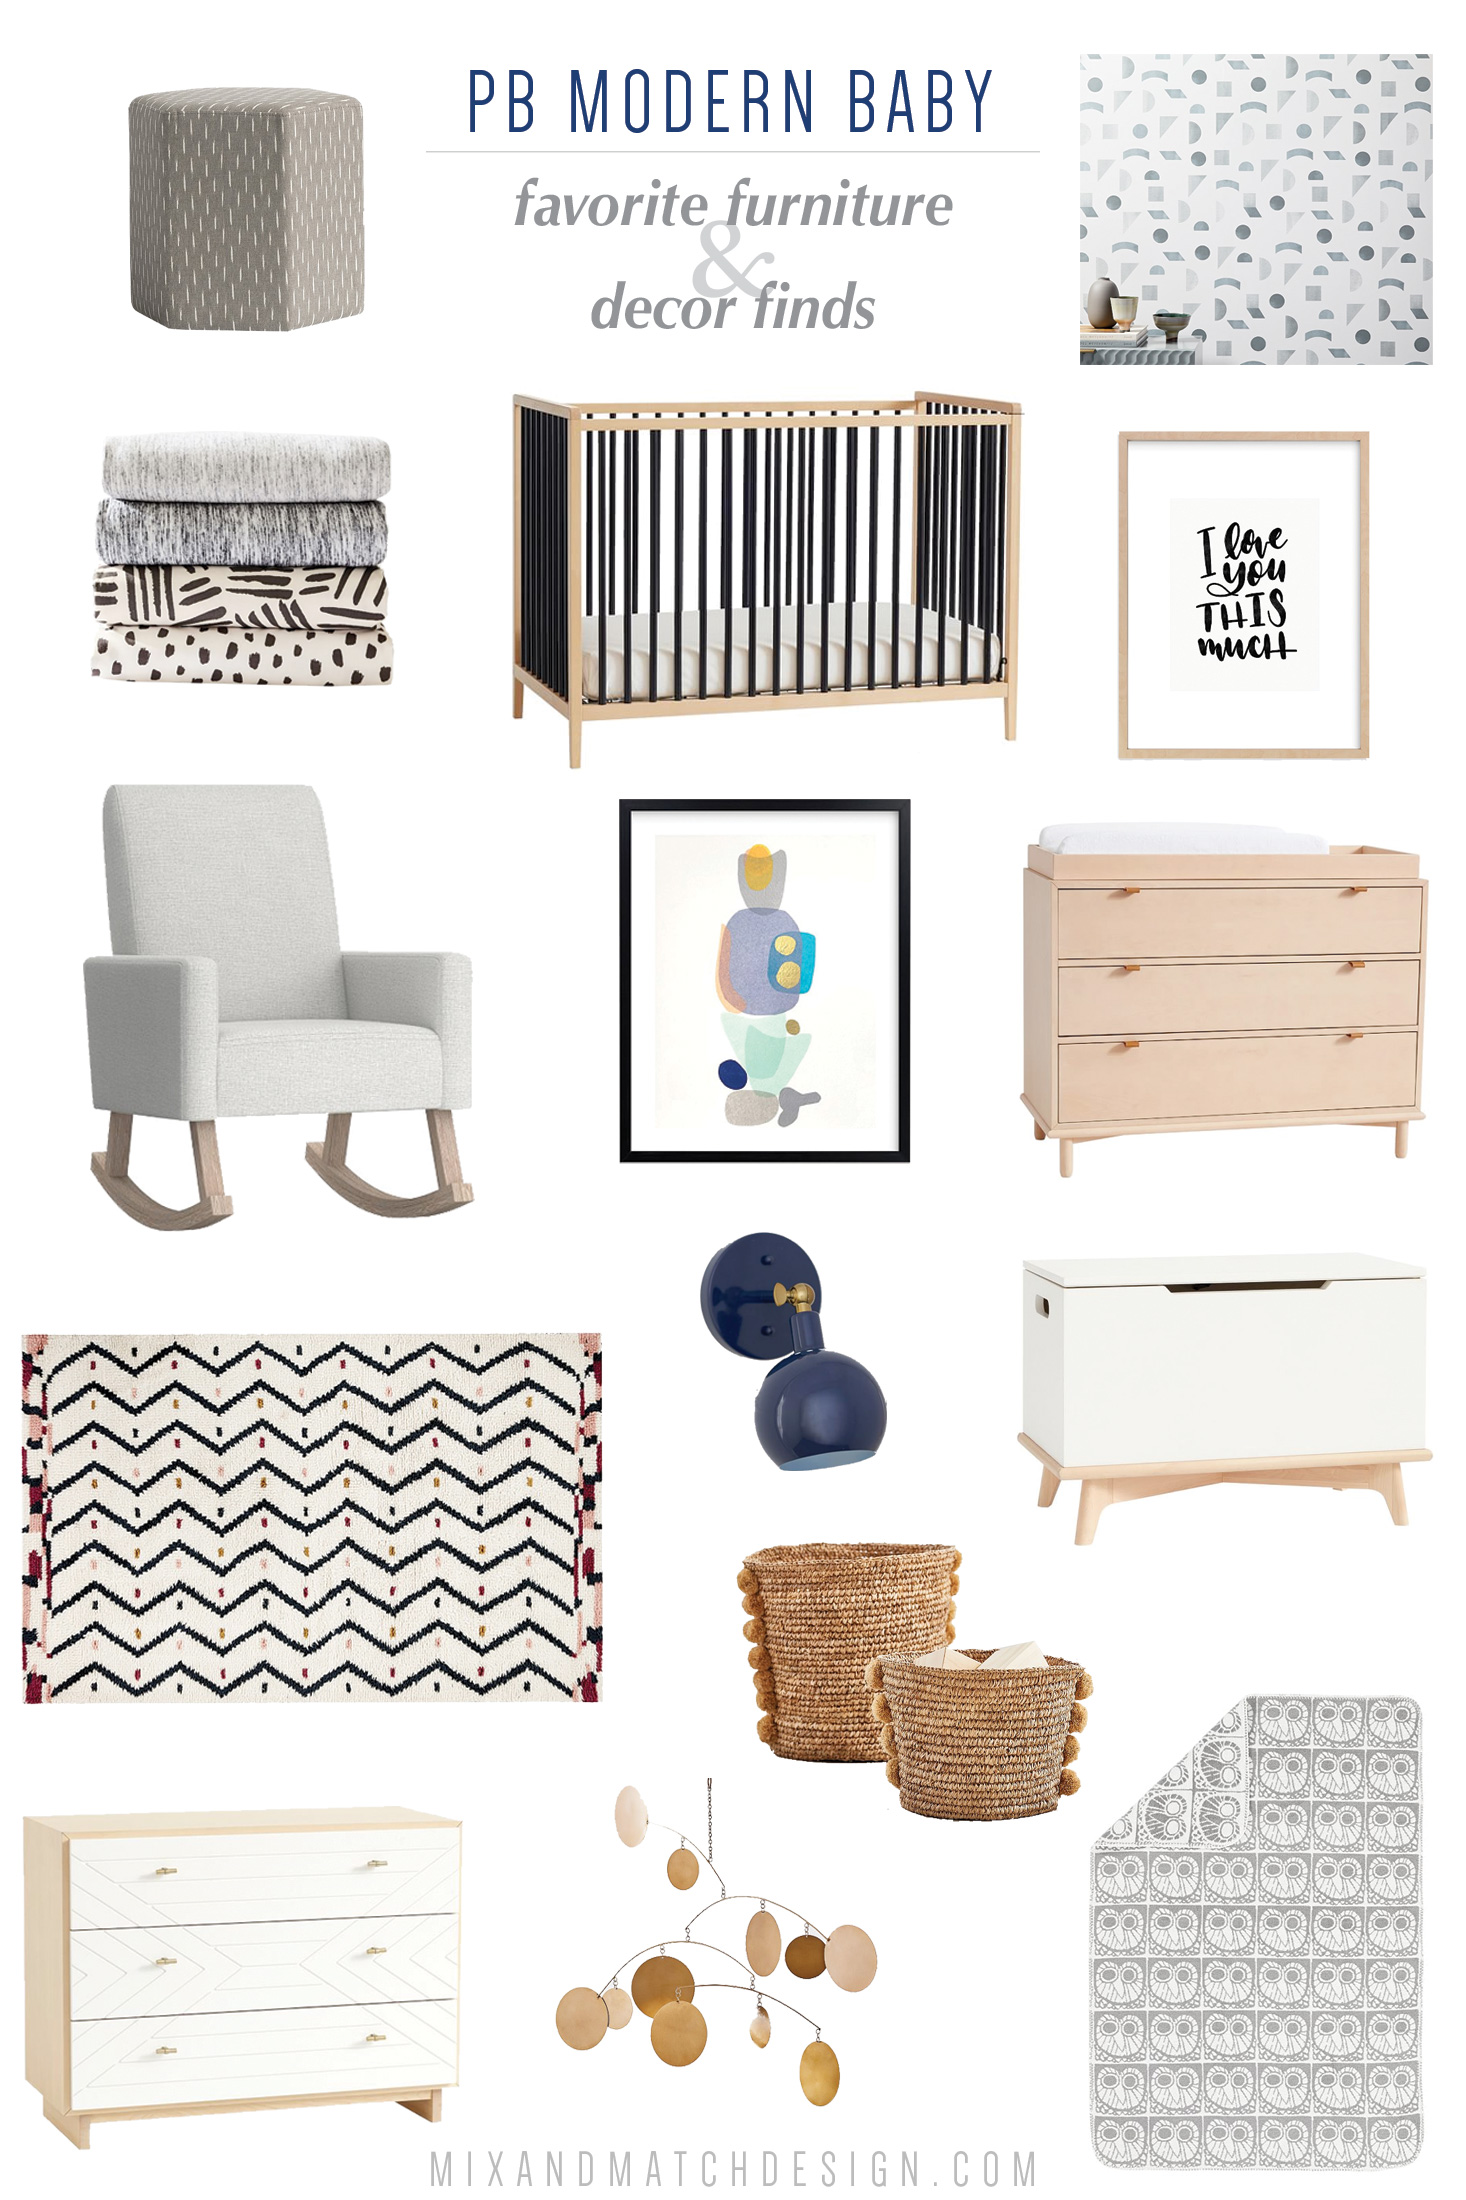 Have you seen Pottery Barn's new Modern Baby collection? They've got an amazing selection of modern baby furniture like cribs and dressers, as well as plenty of decor to go with it. Some of the pieces are in collaboration with West Elm, their sister brand. I'm loving what I'm seeing!